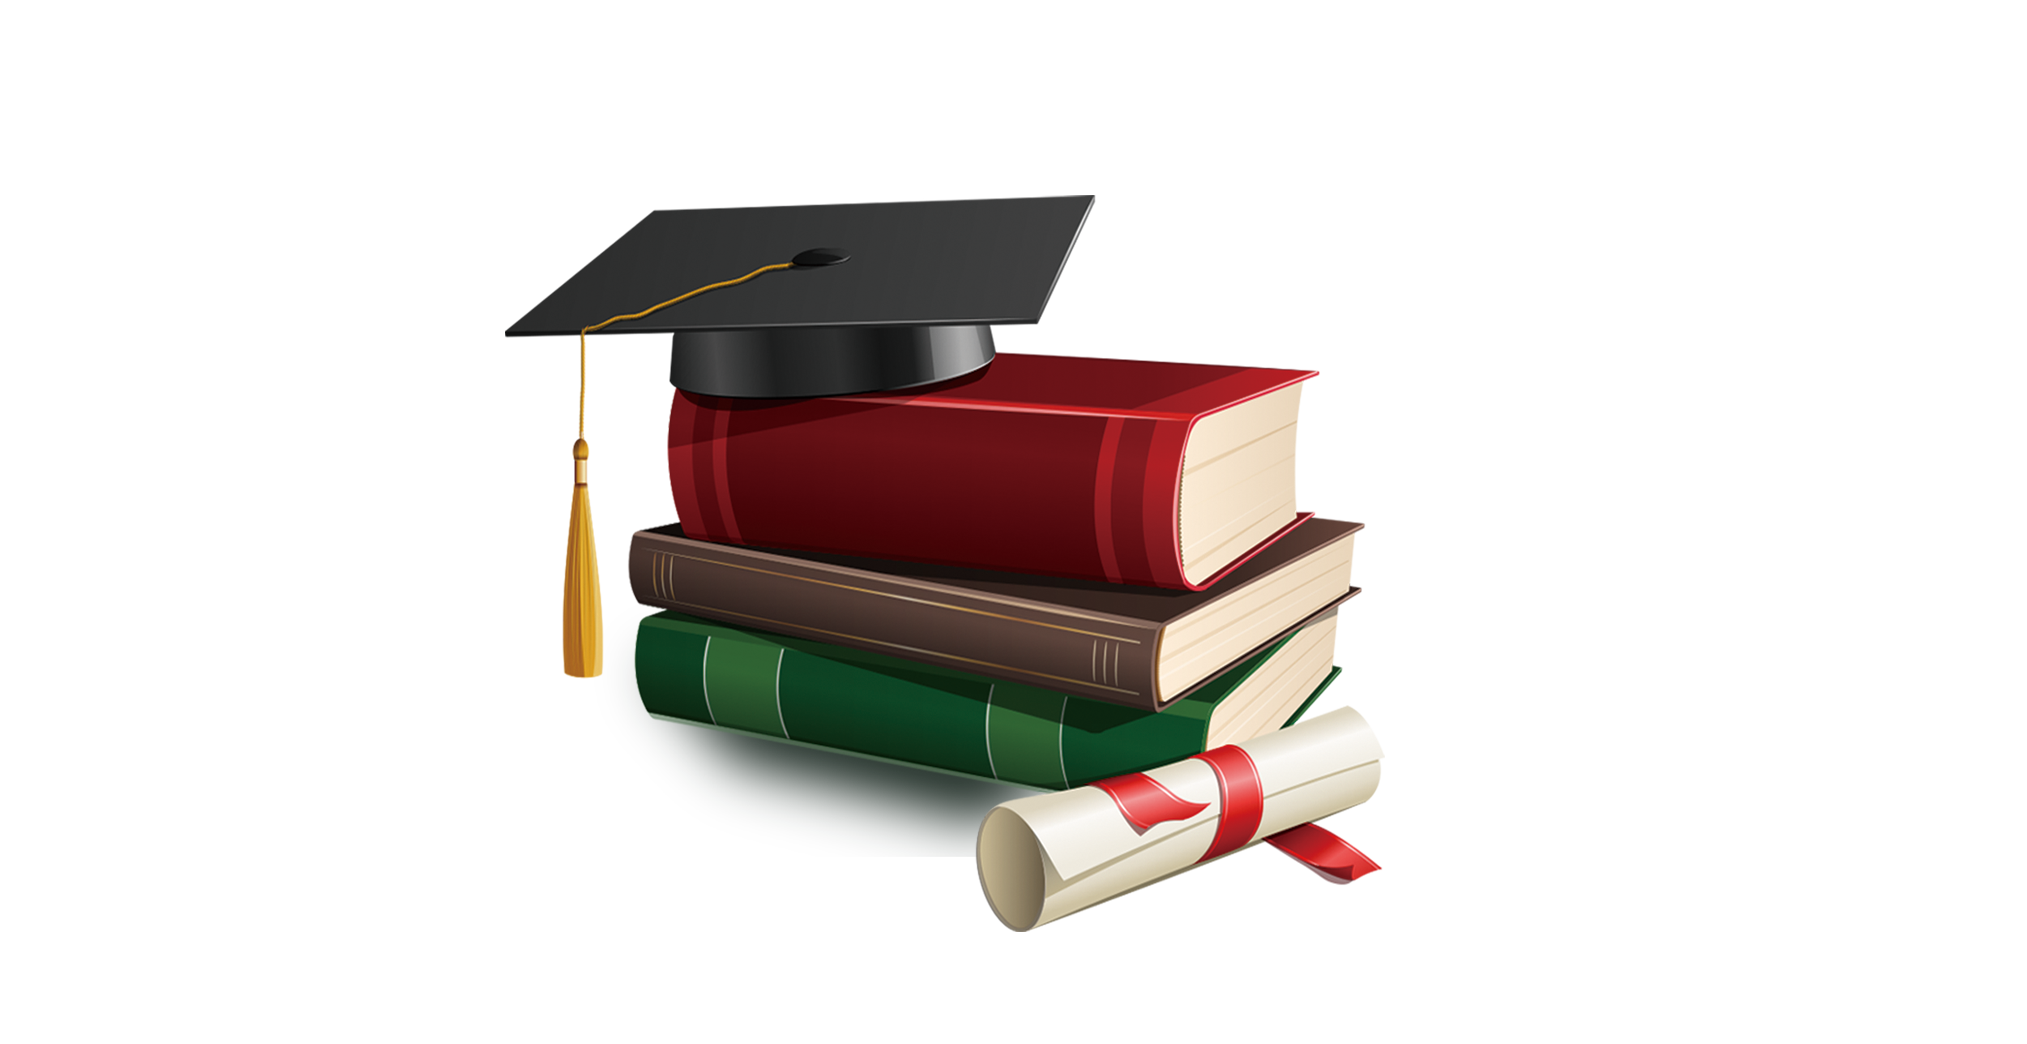 kisspng-graduation-ceremony-square-academic-cap-diploma-cl-book-5aa26bd1279a70.5082033015205938731622